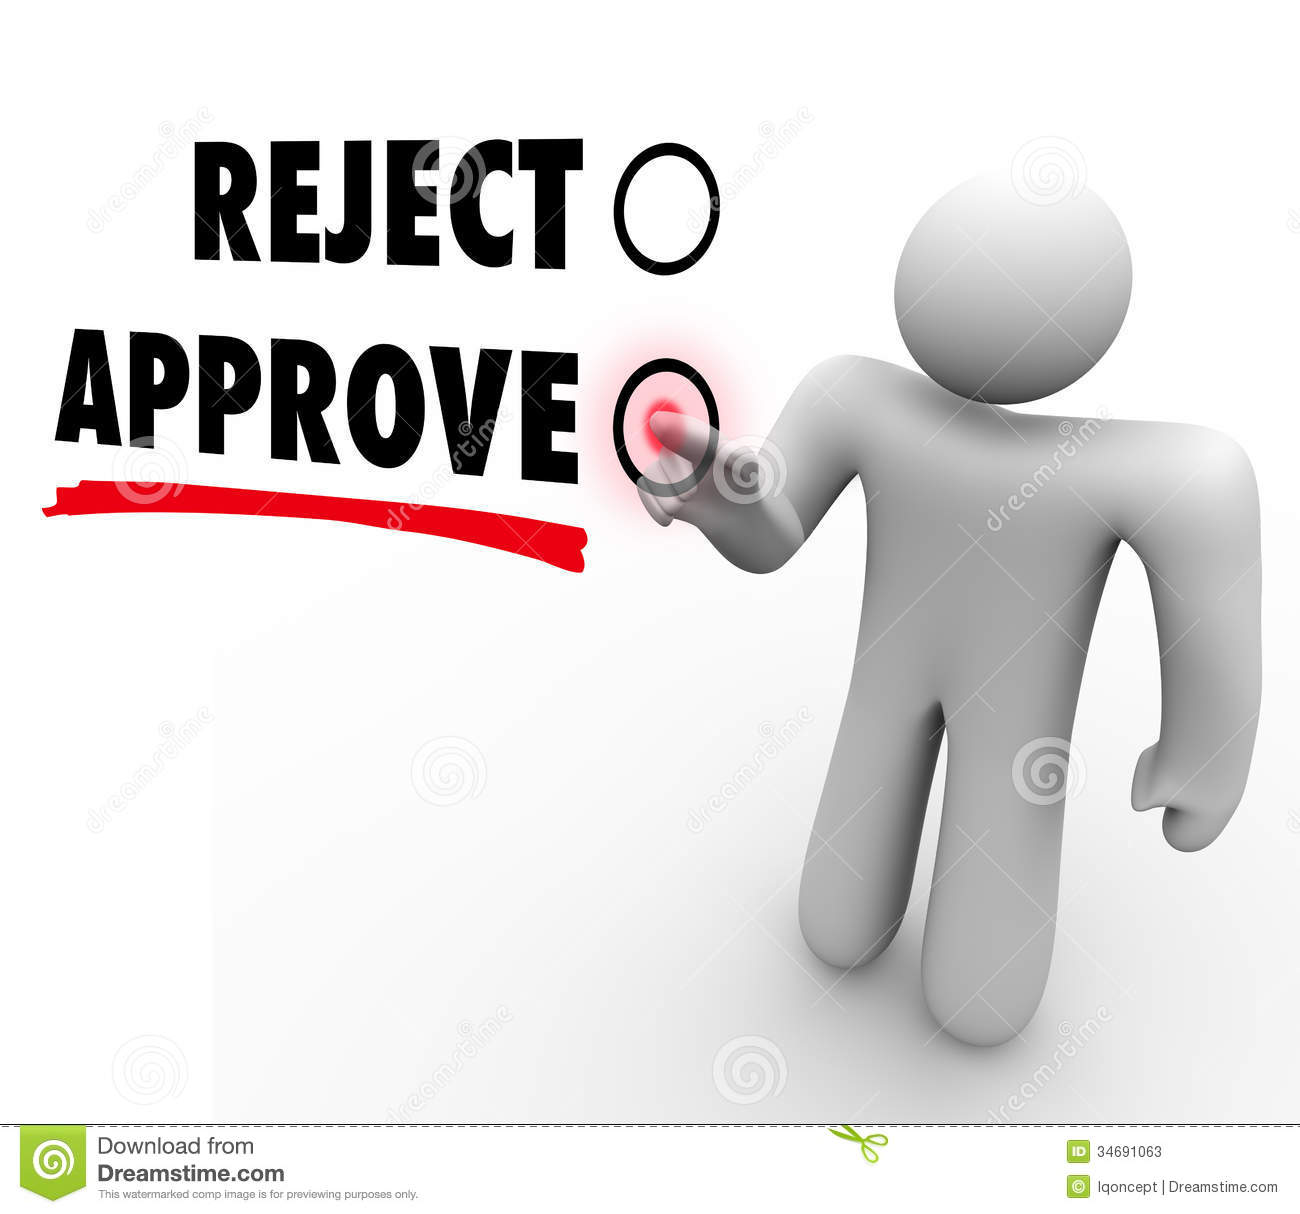 ... with a voter pressing a button for approval of a proposal or question